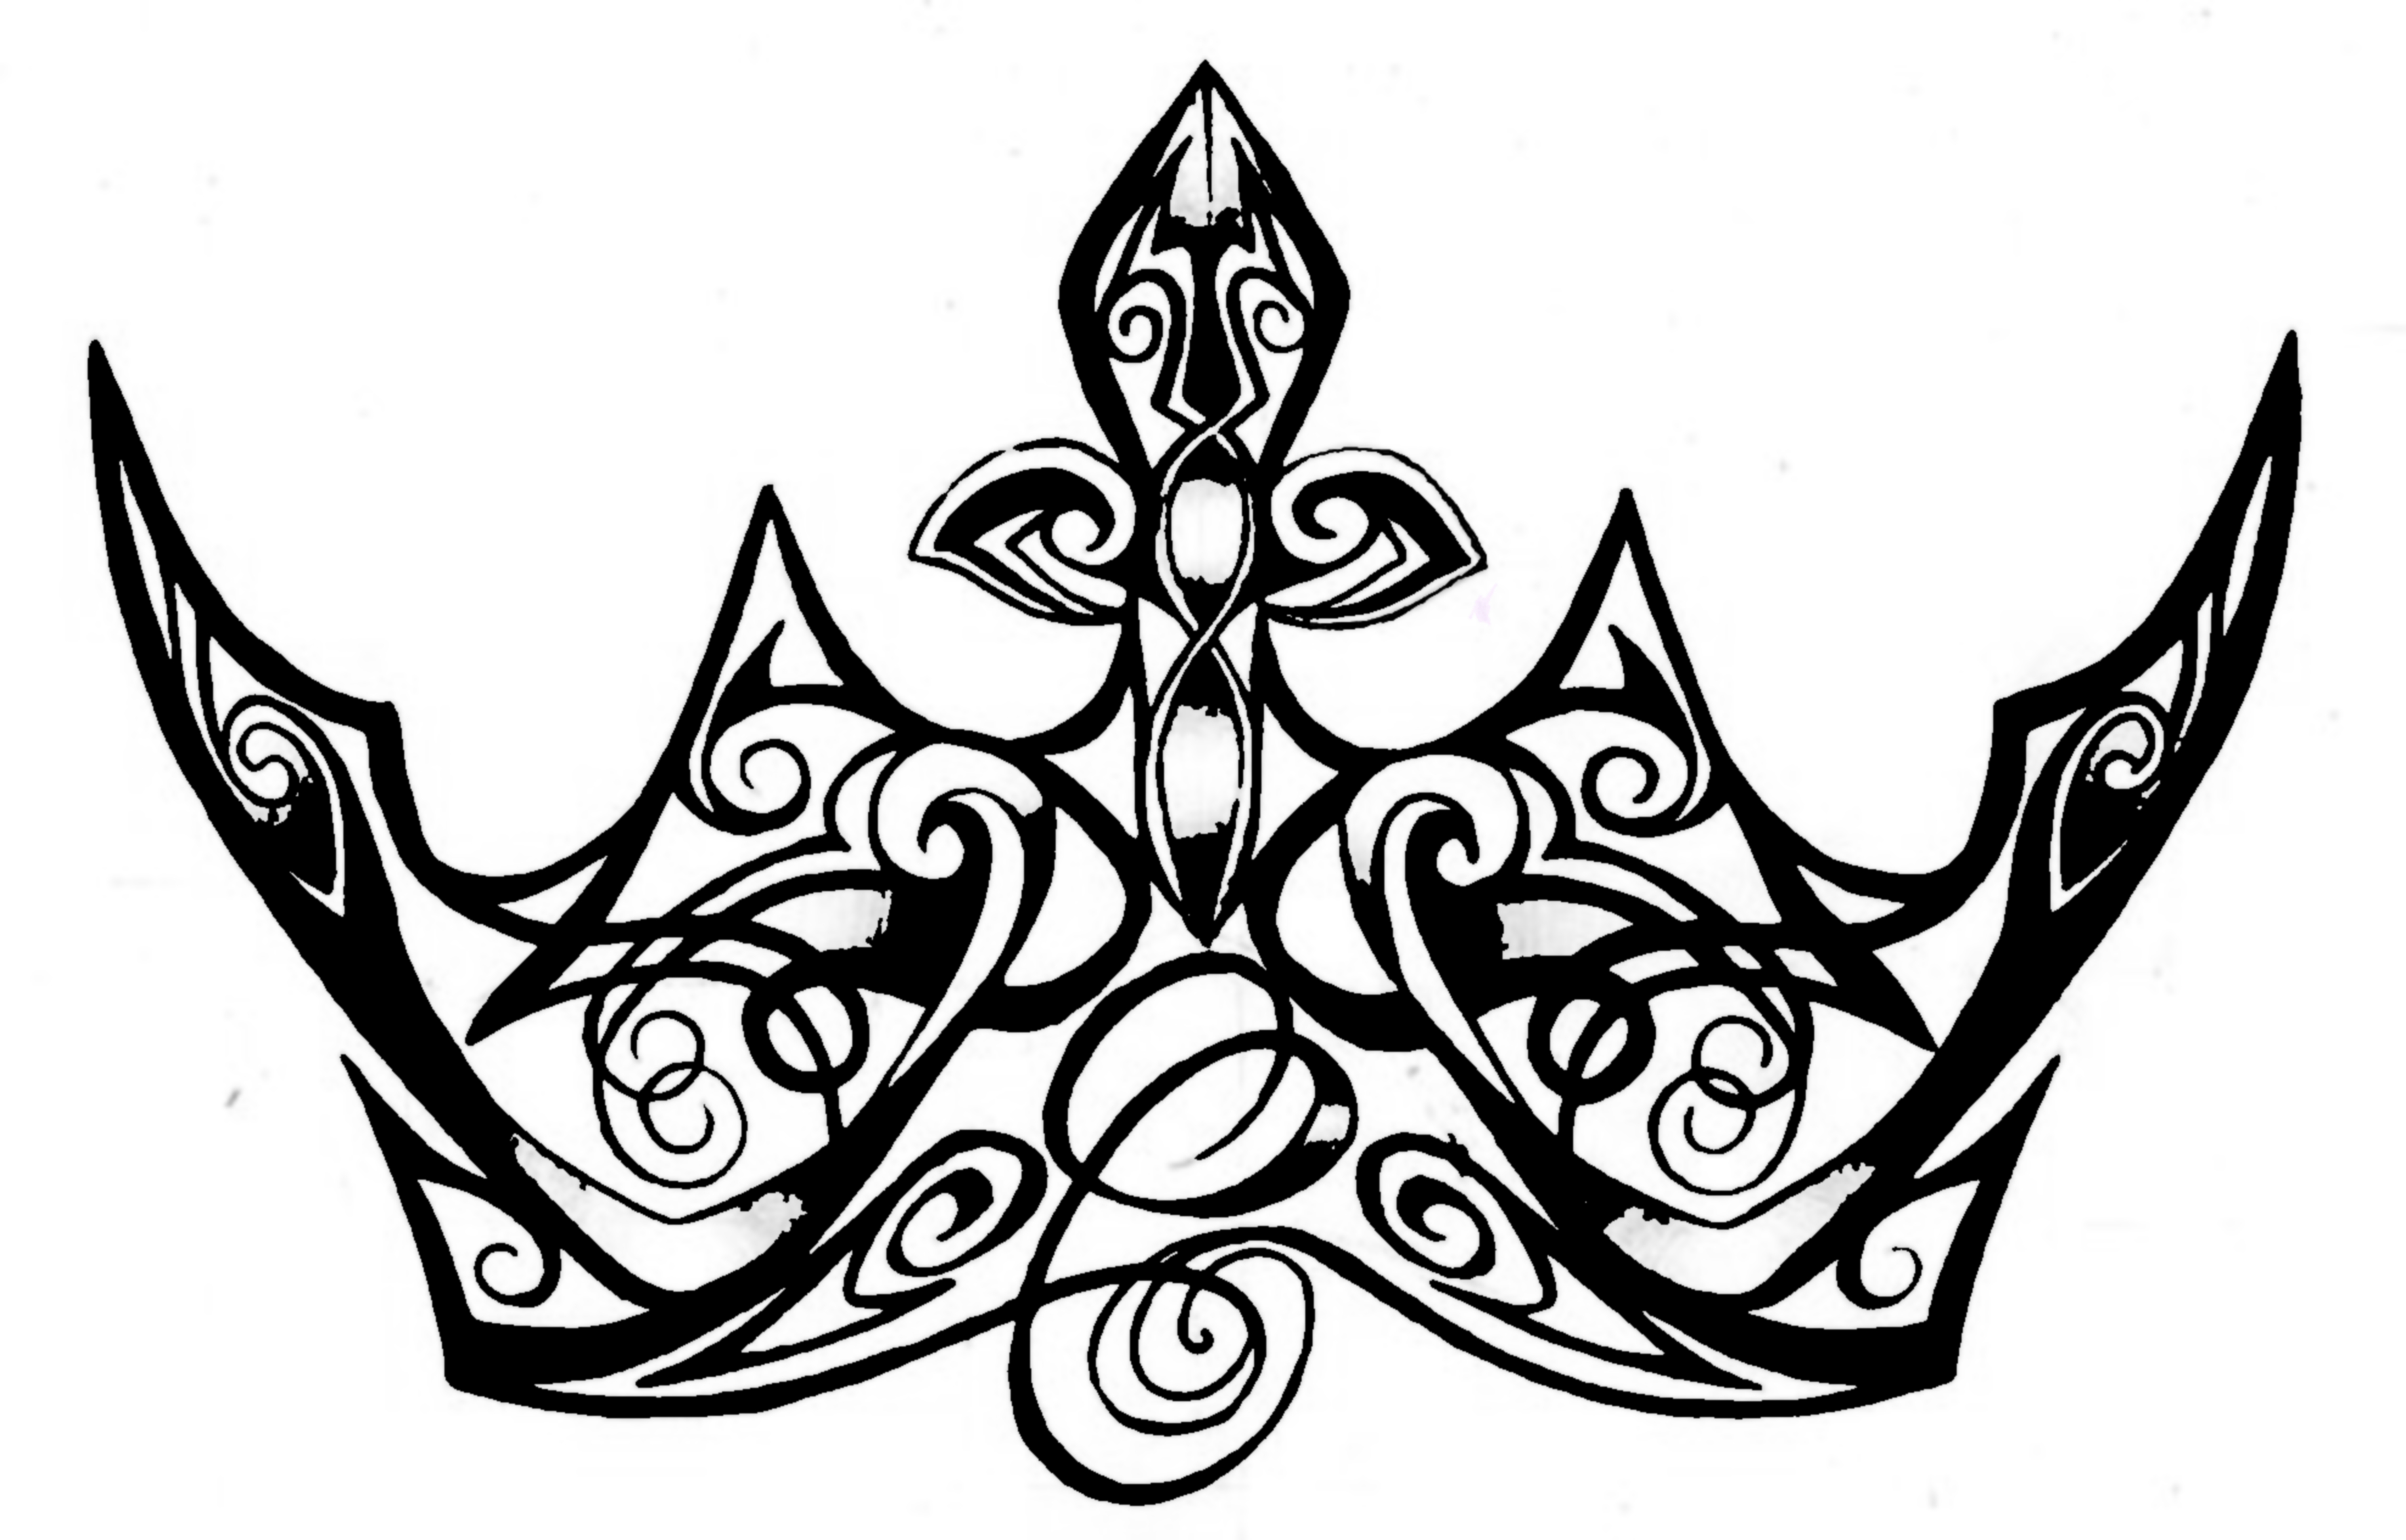 how to draw a crown easy princess crown drawing at getdrawings free download how a to crown draw